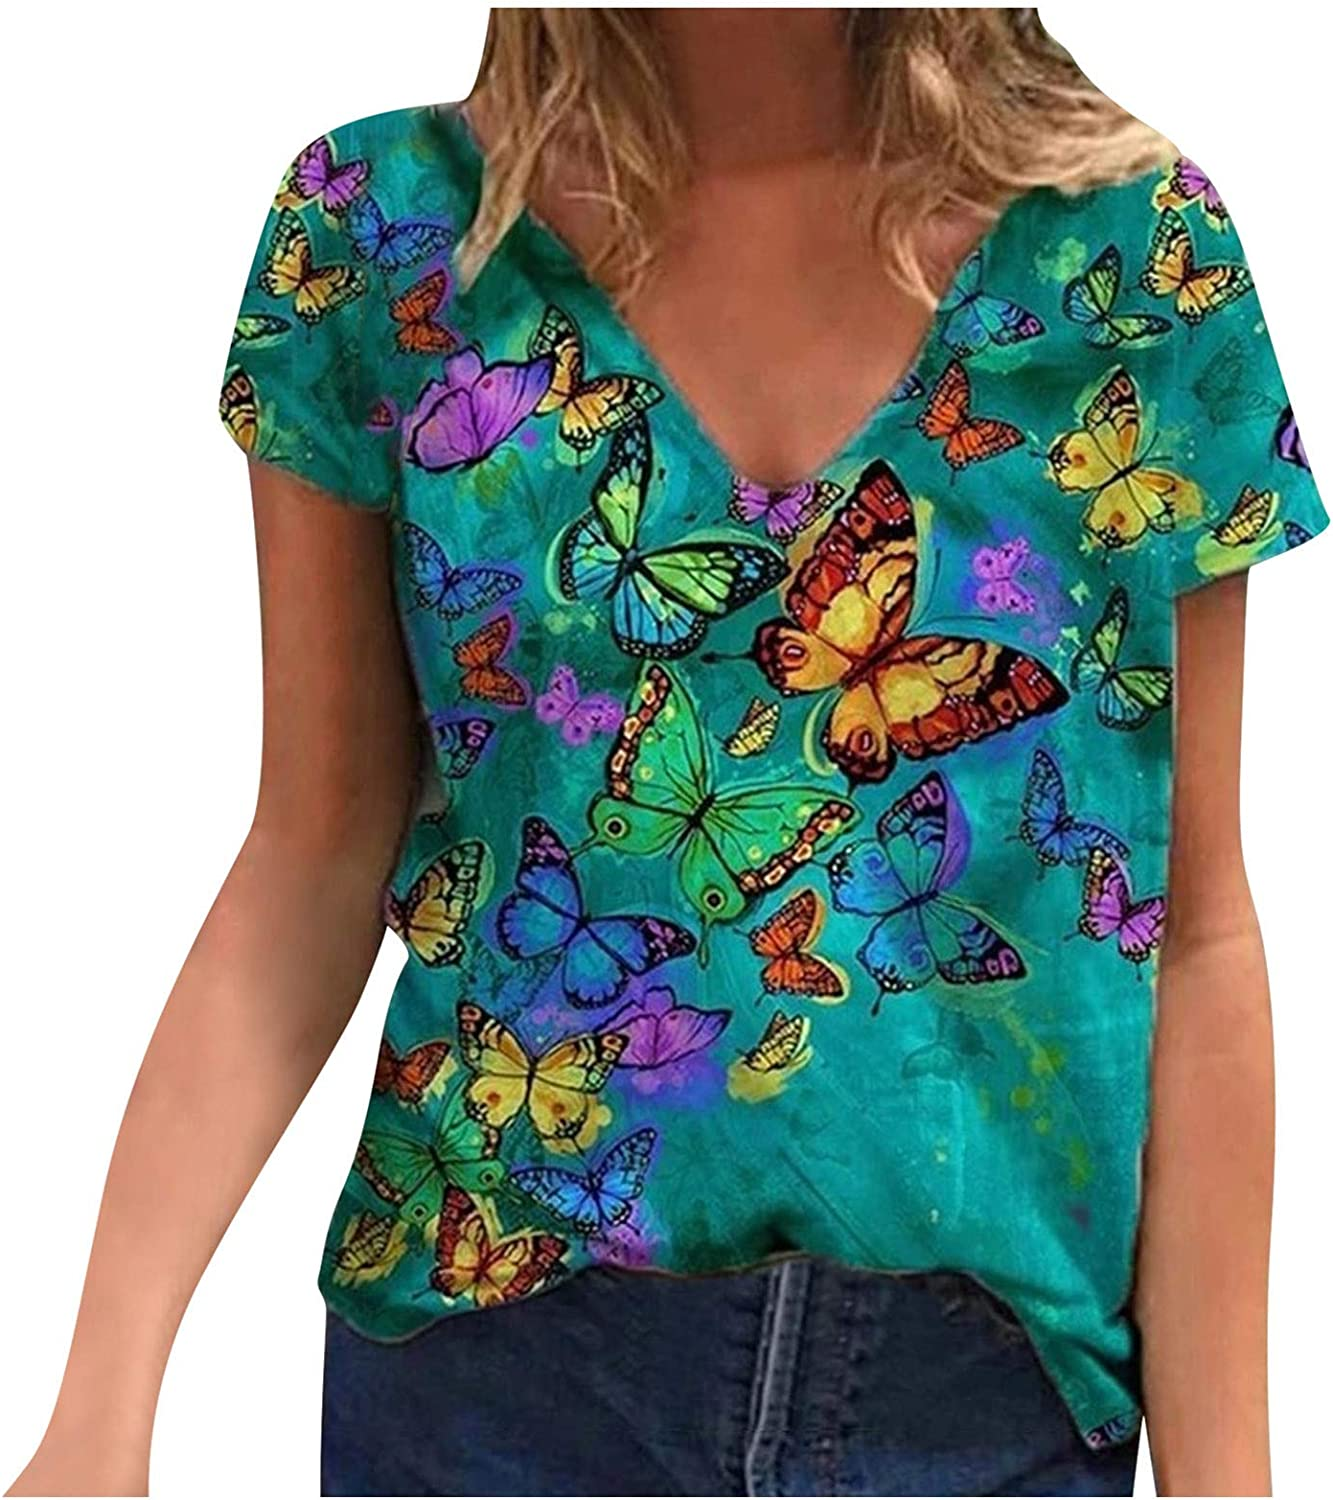 Tops for Women Plus Size,AODONG Shirts for Women Fashion Round Neck Love Printed Tee Shirt Casual Short Sleeve T-Shirt Top Blouses